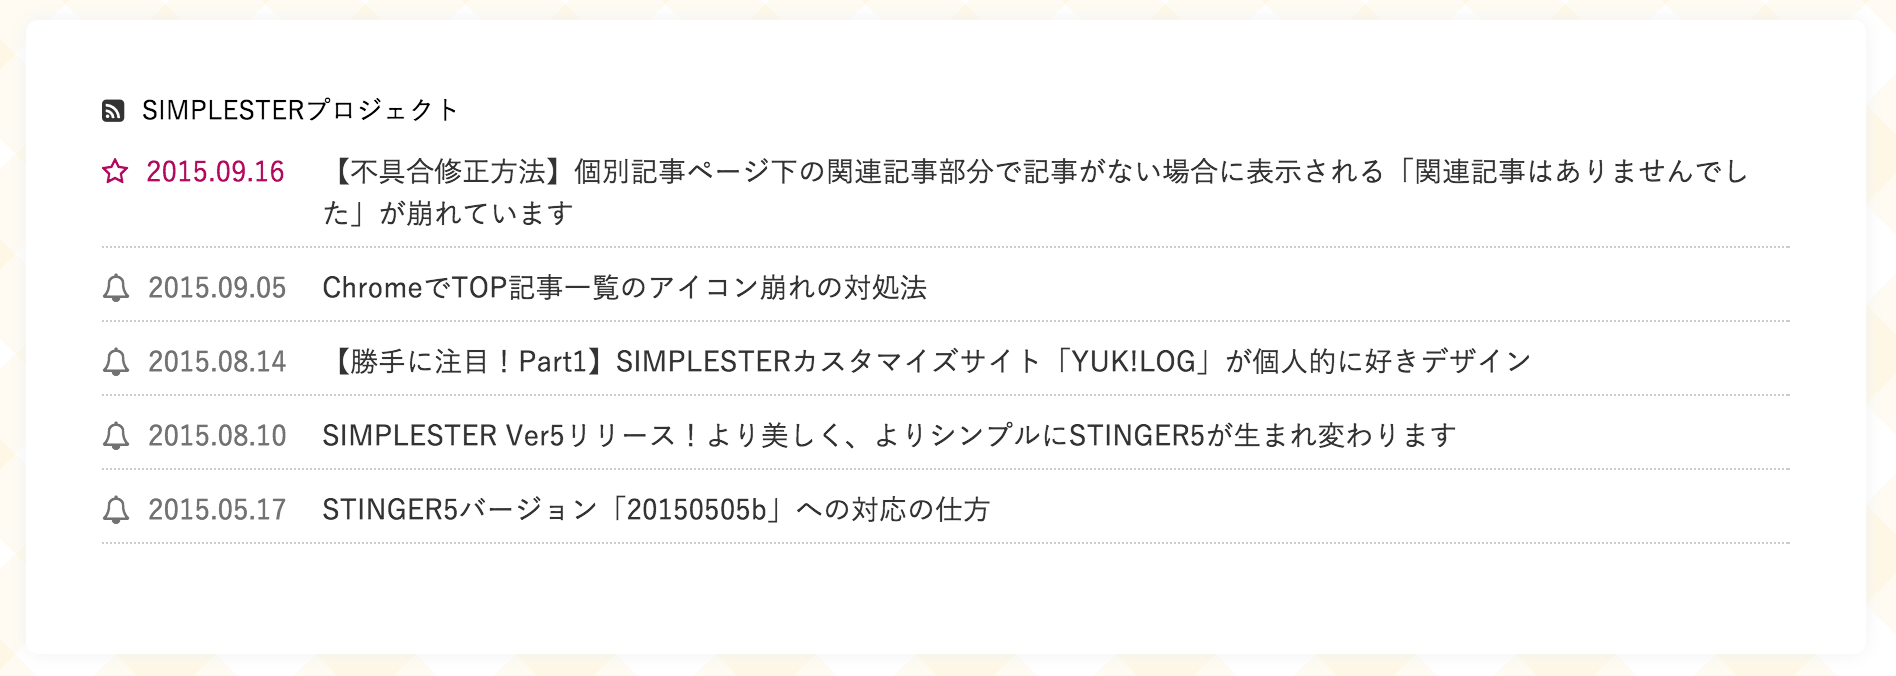 5_20151220_simplester-ver6